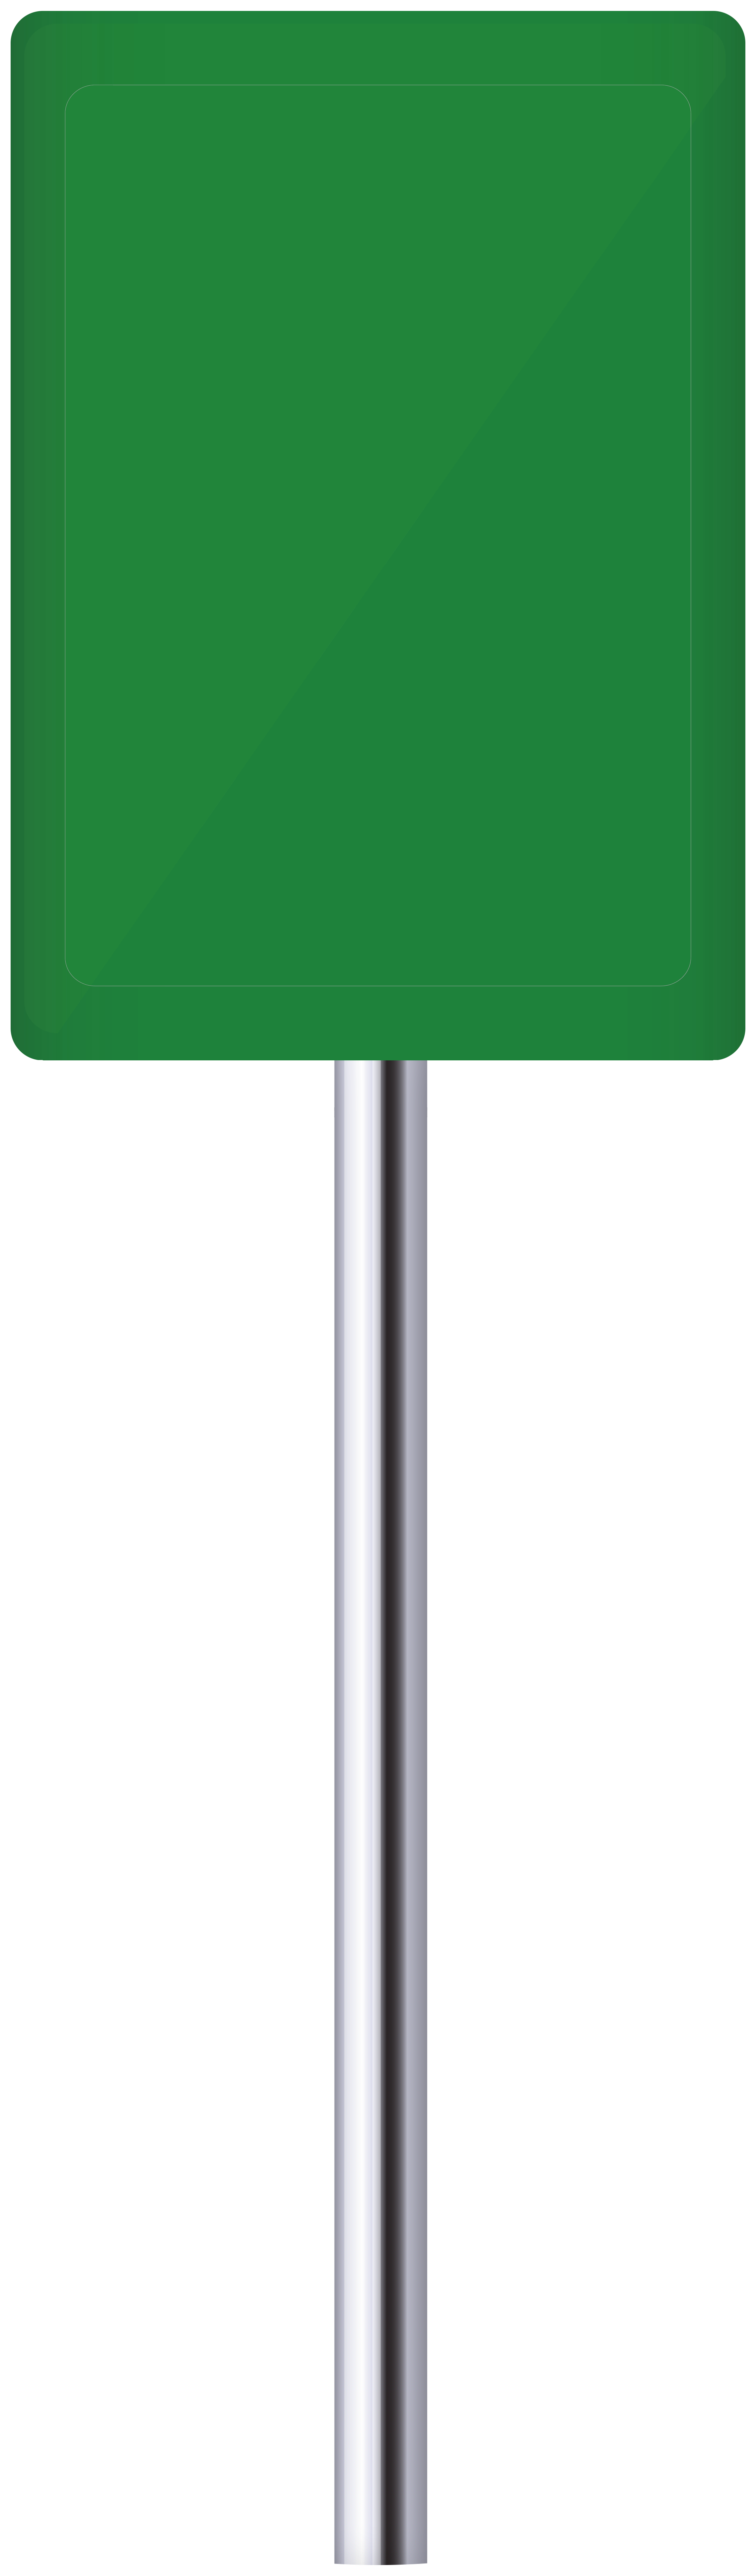 Safe clipart empty. Green sign png clip